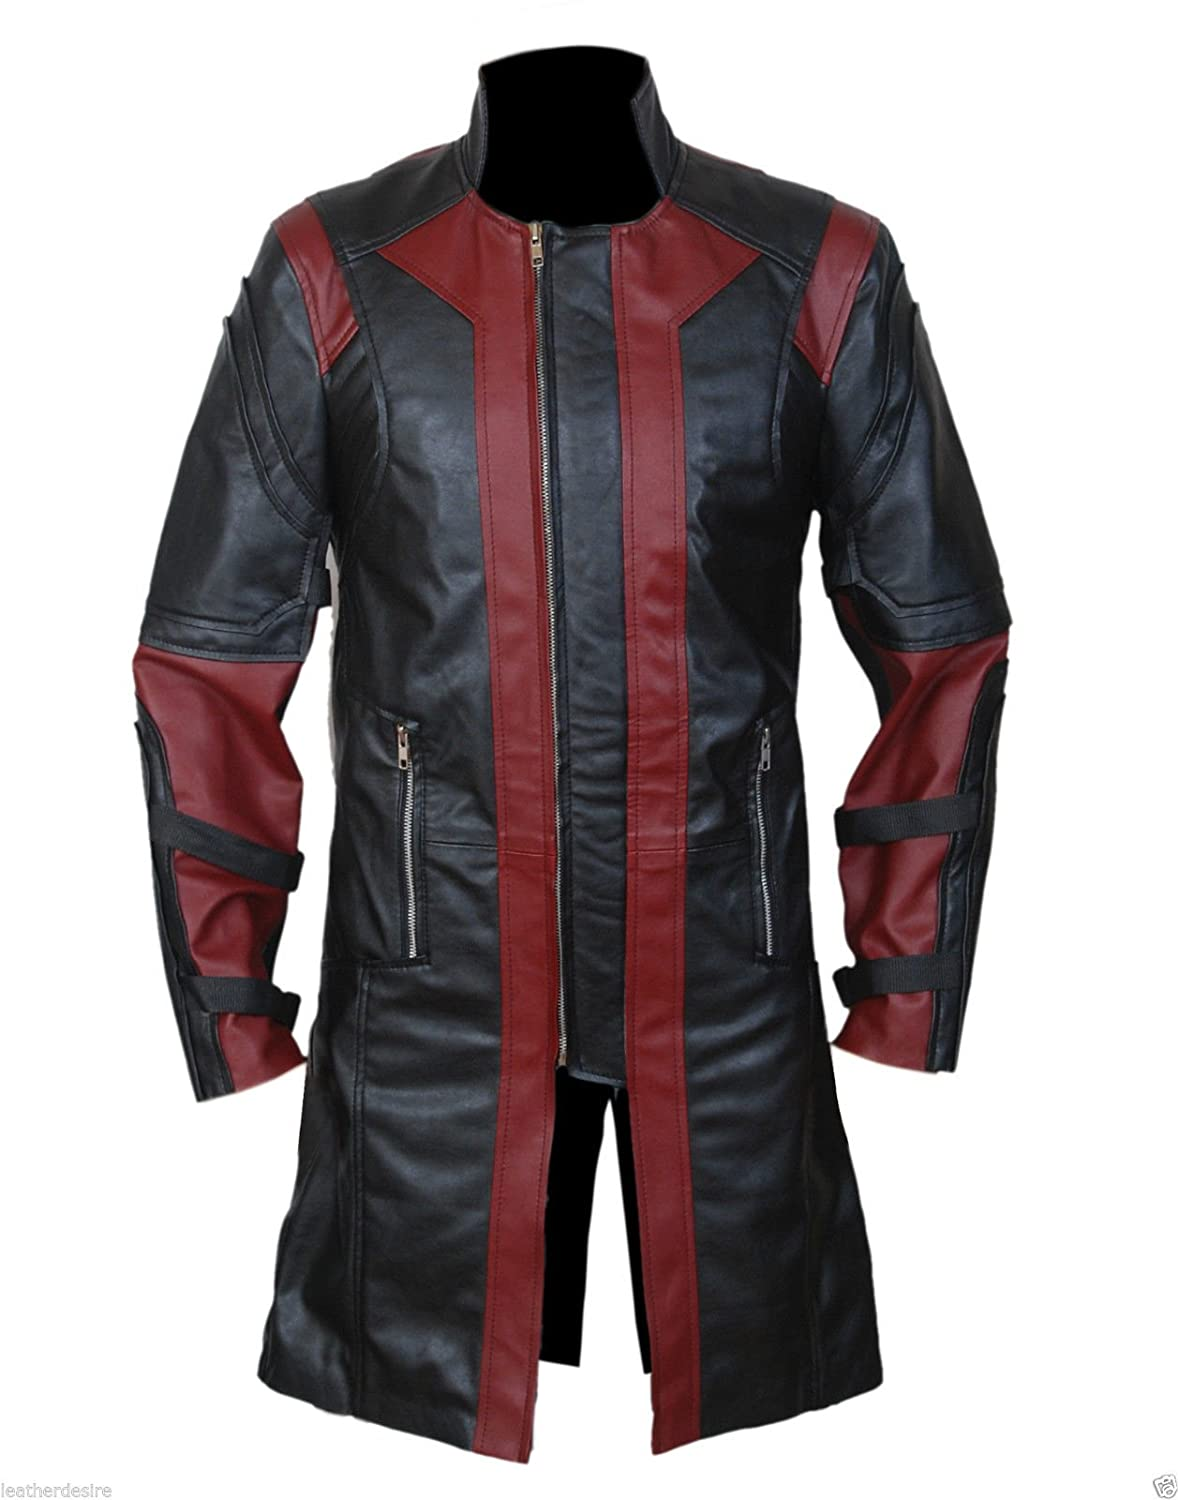 Avengers: Age of Ultron Jeremy Renner's Hawkeye Real Nappa Leather Coat - DeluxeAdultCostumes.com